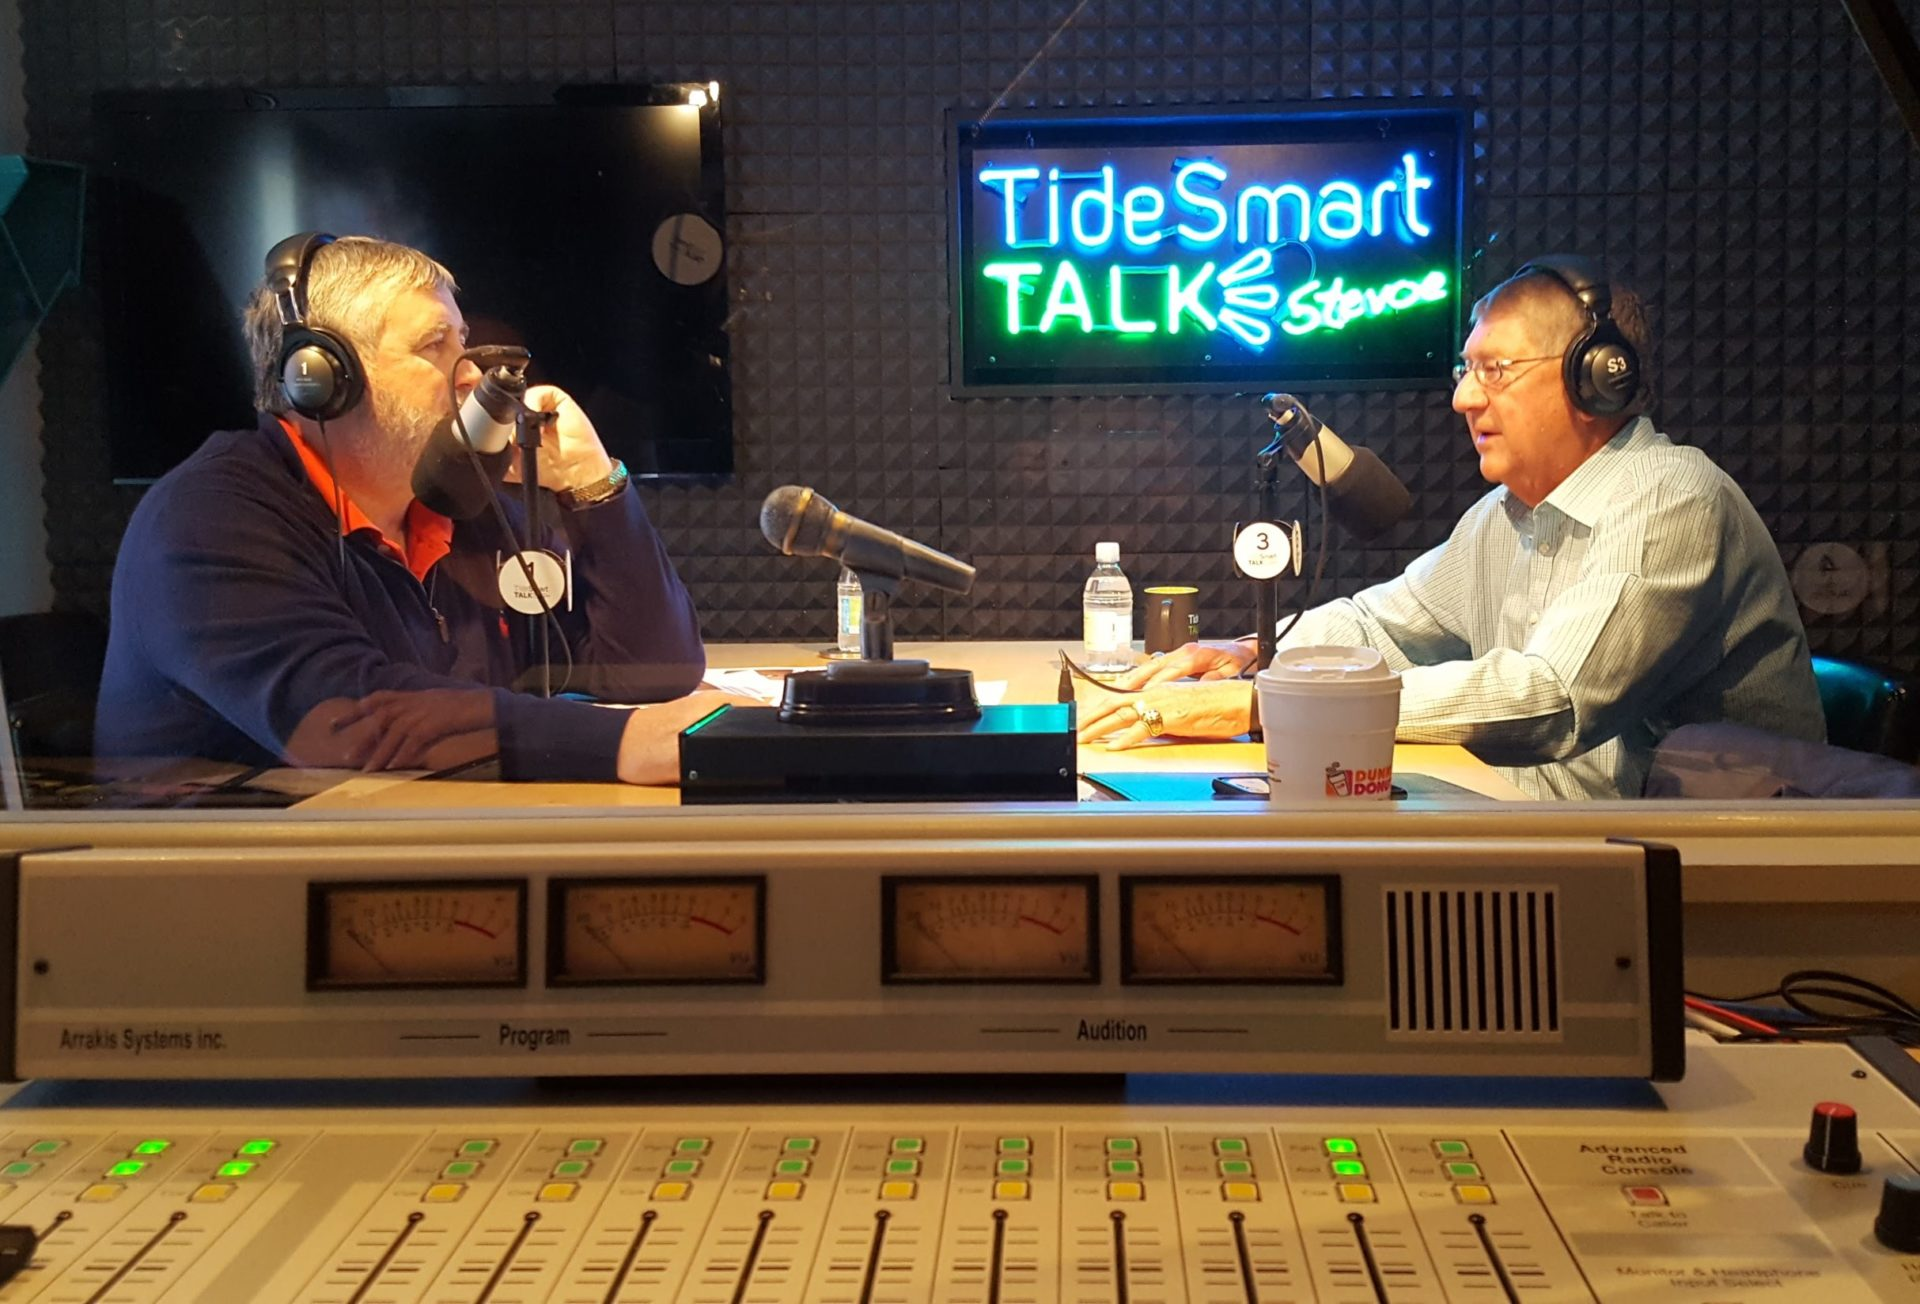 Host of TideSmart Talk with Stevoe, Steve Woods, welcomed Executive Director of the Maine Principals' Association, Dick Durost (at right).